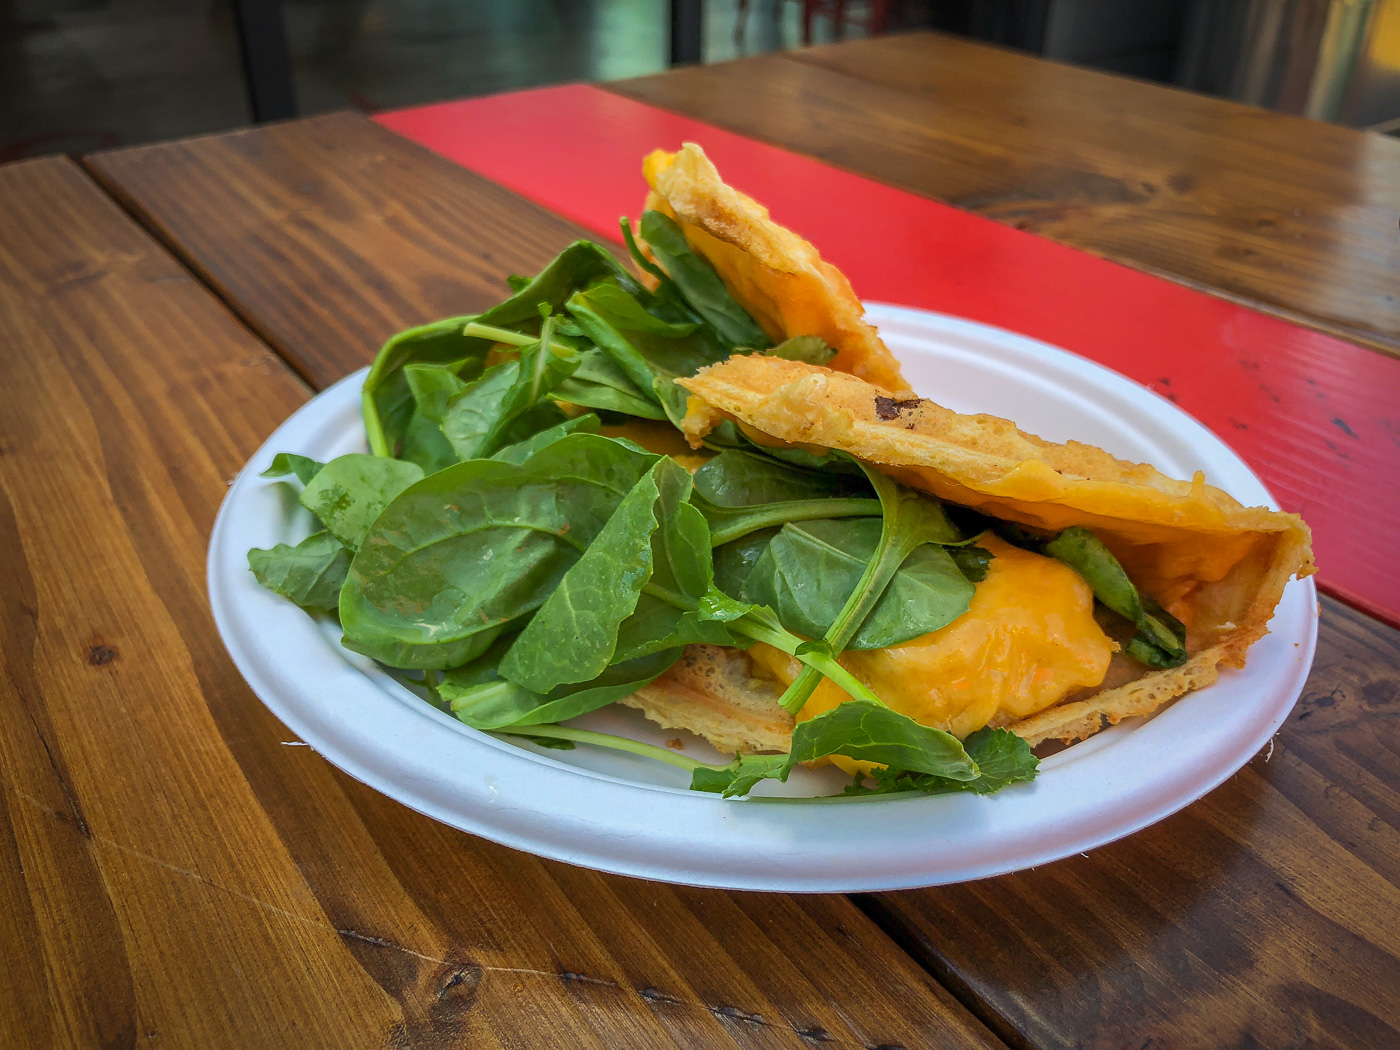 Waffle filled with tofu, cheese and spinach